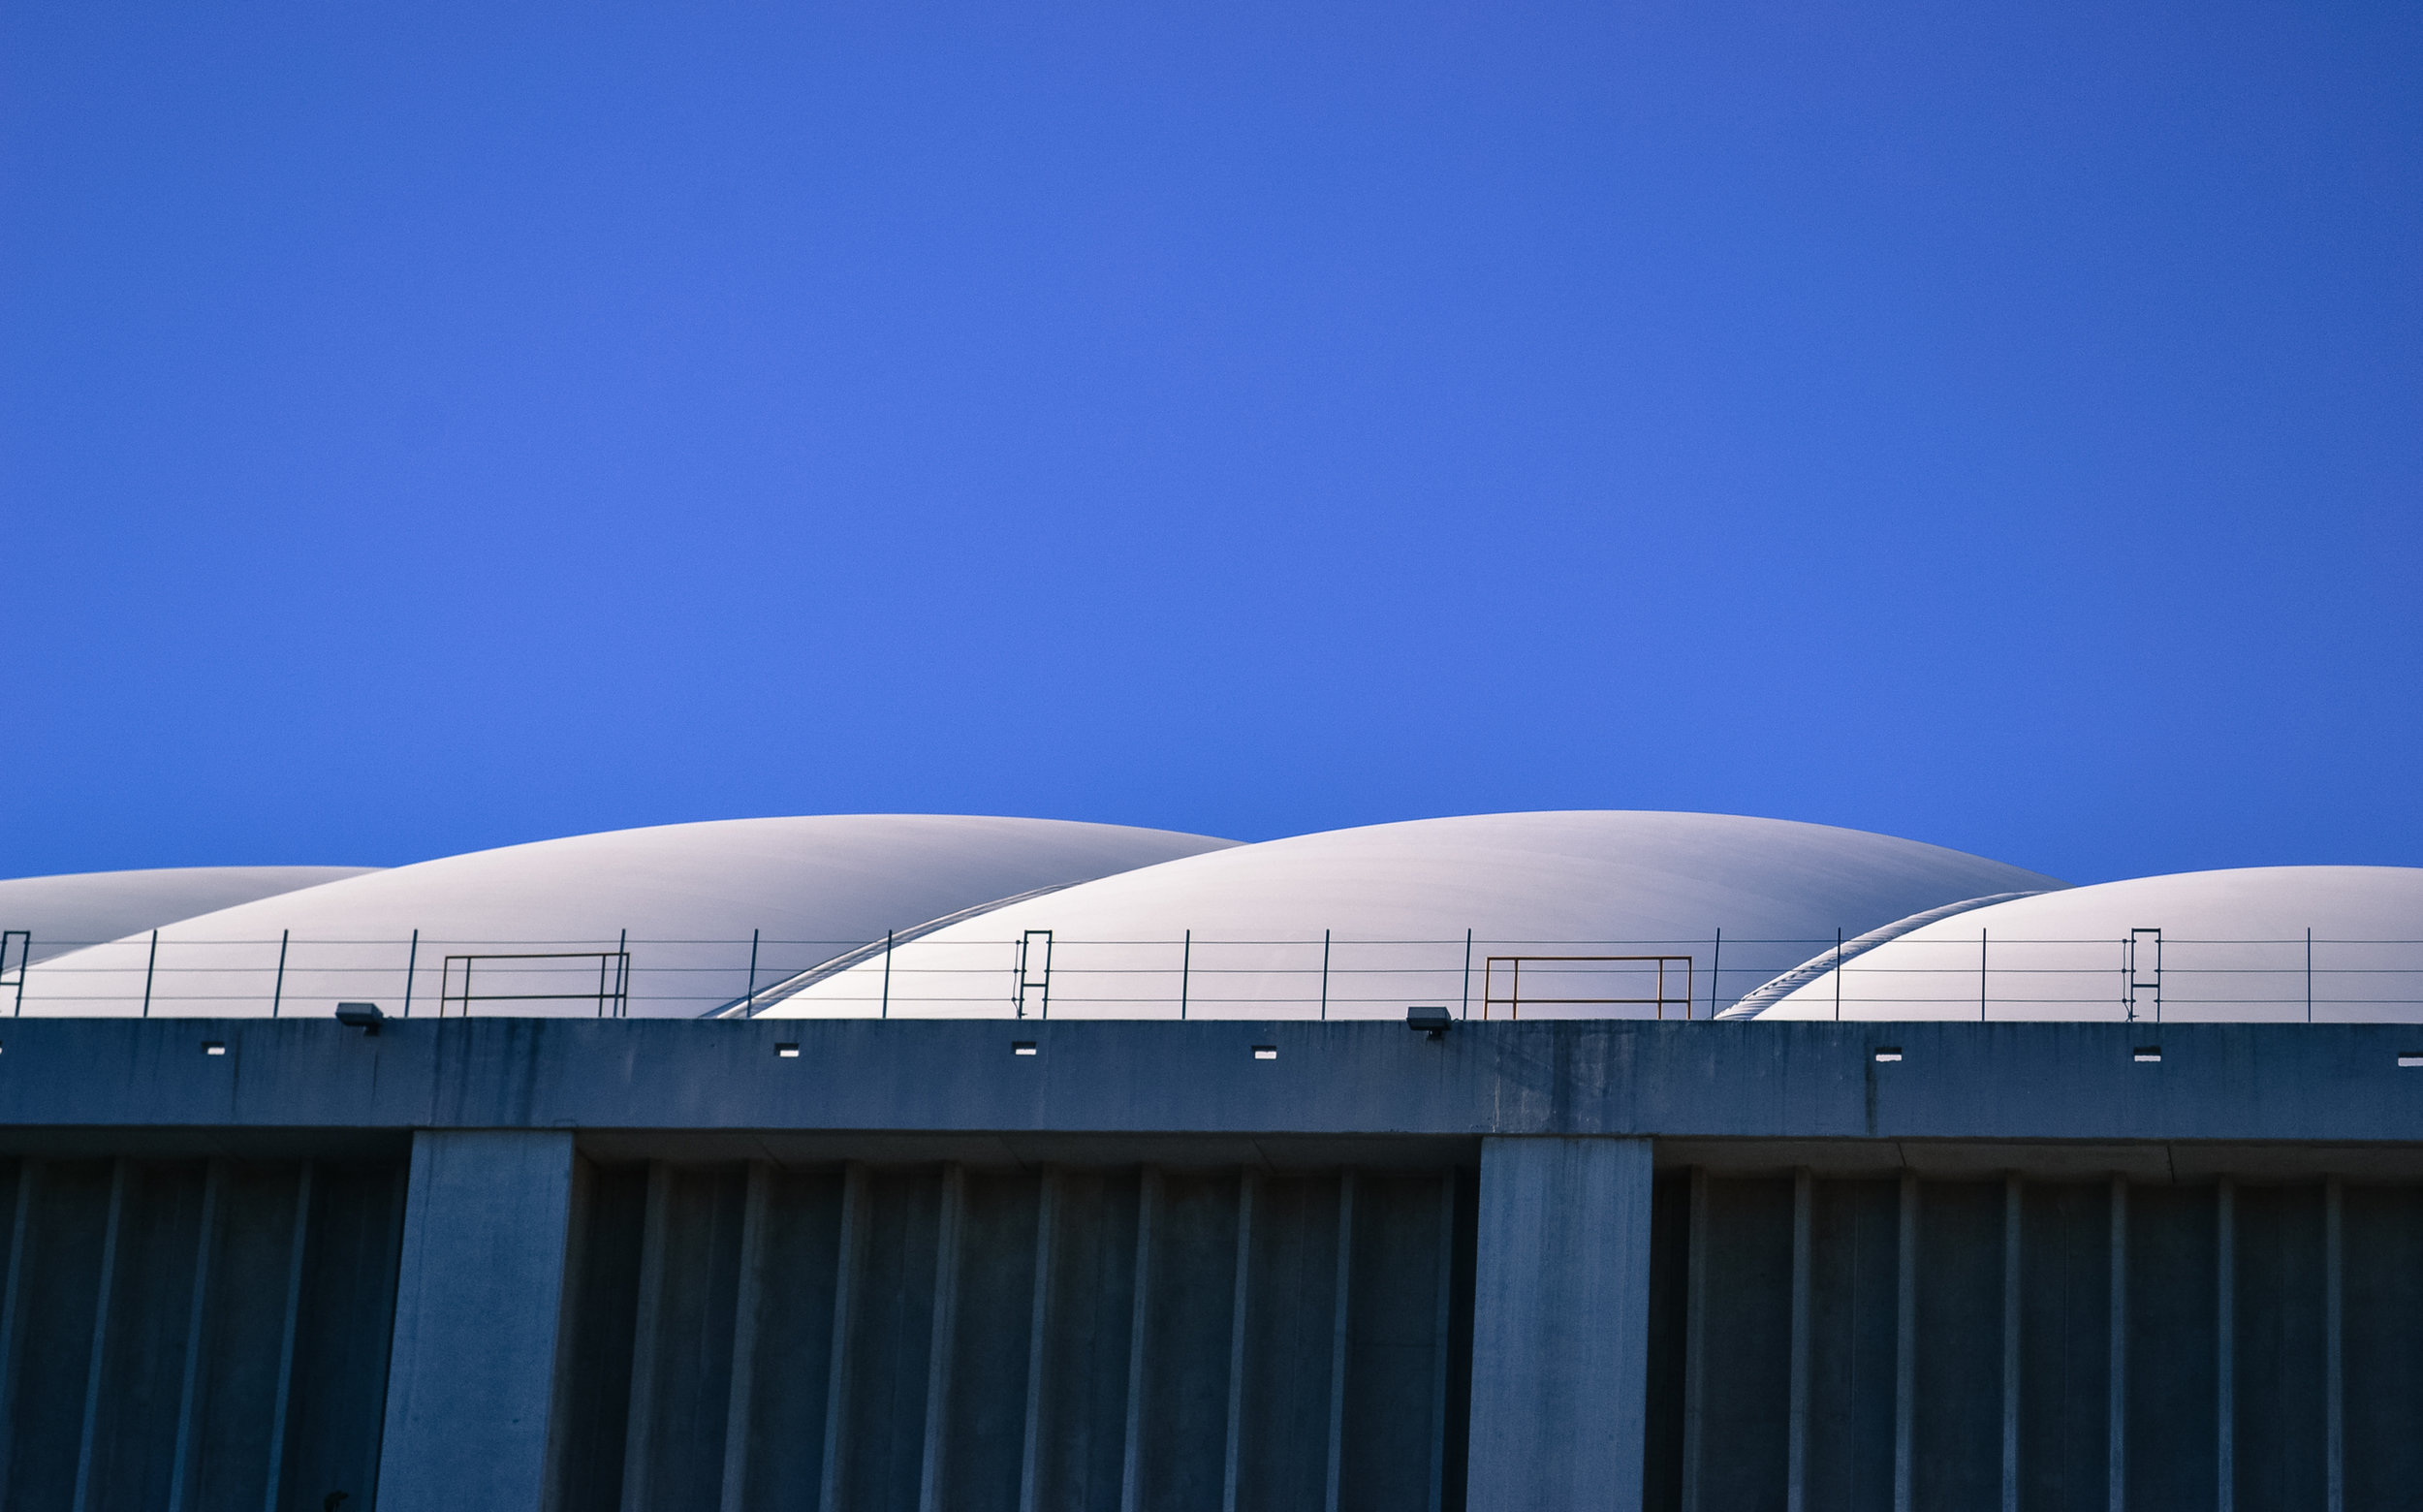 carrier-dome